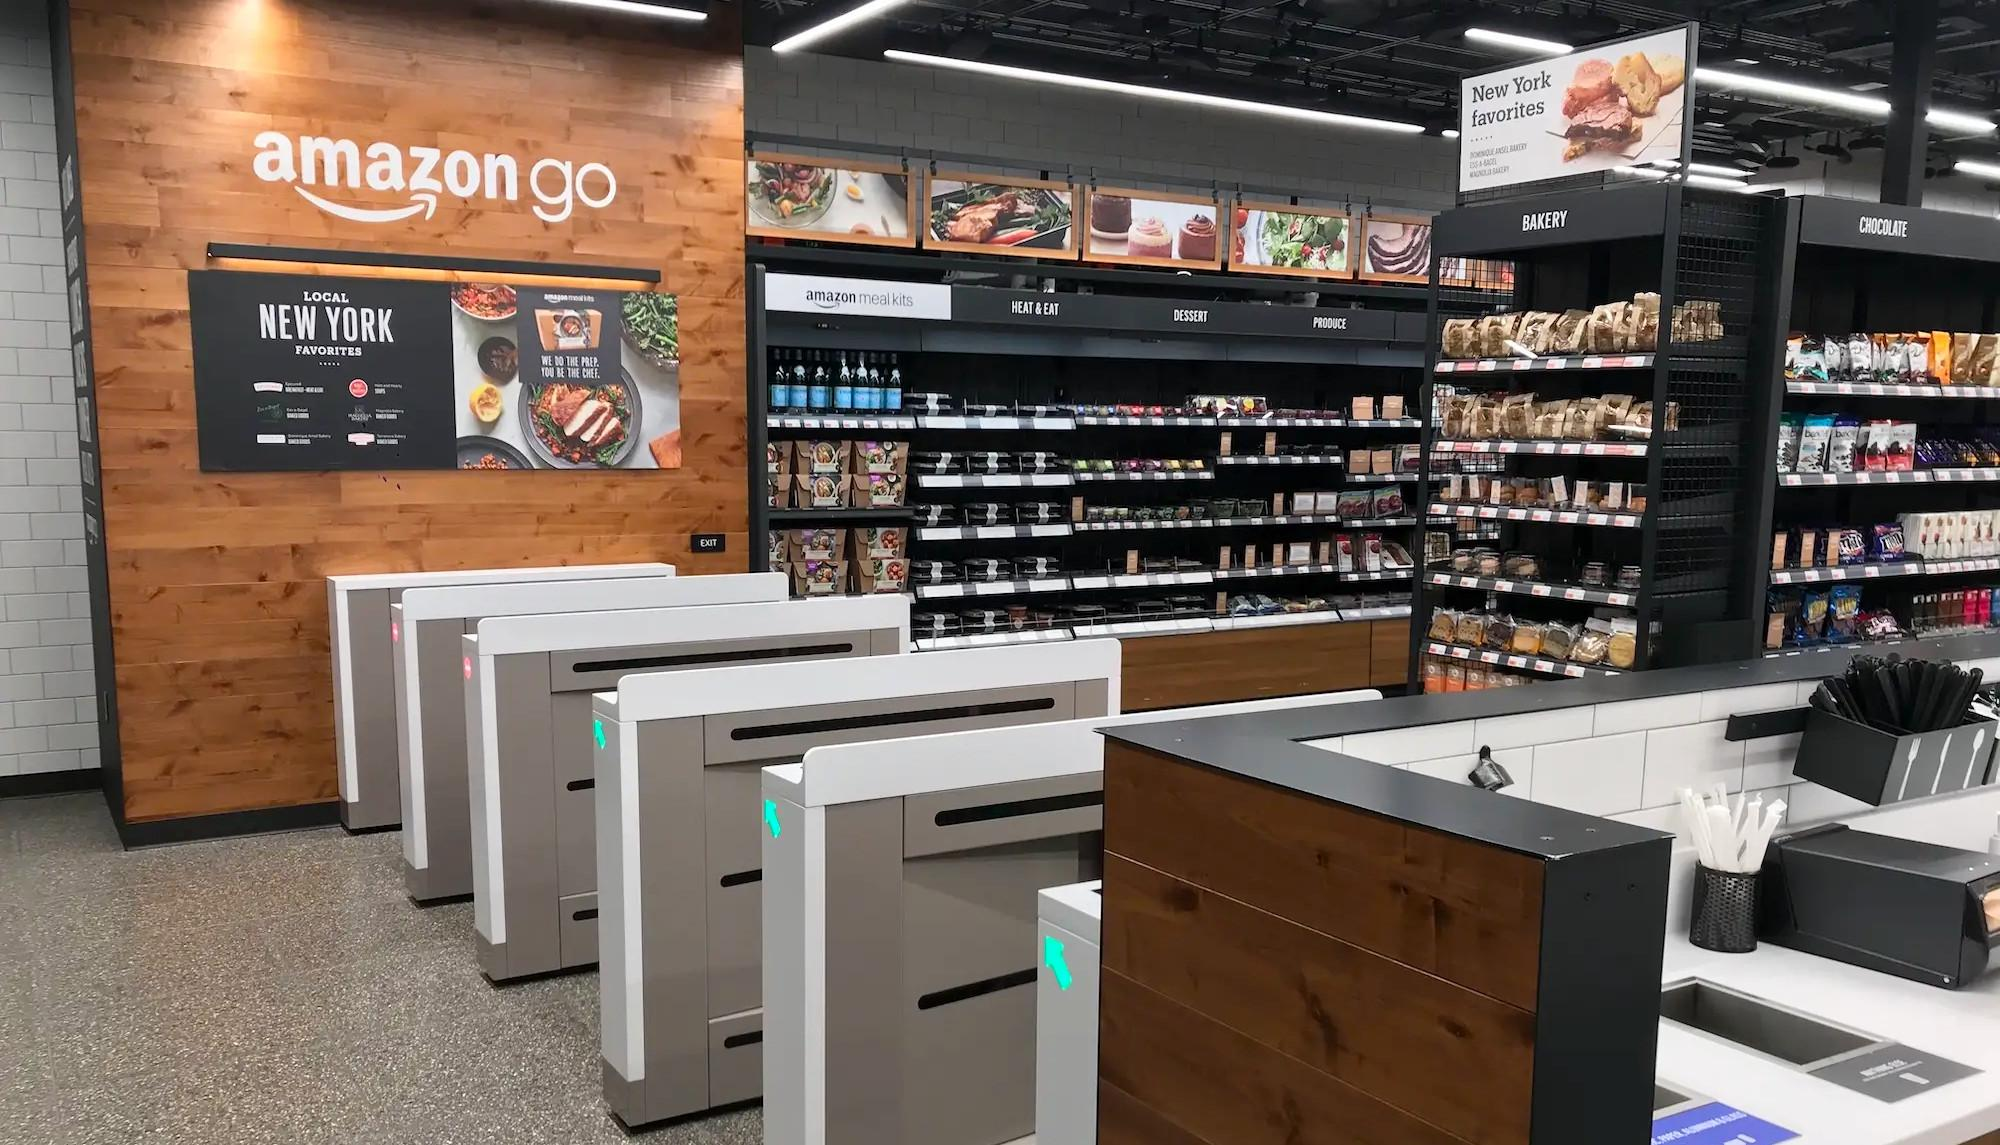 Amazon Go Grocery is an example of design thinking in business